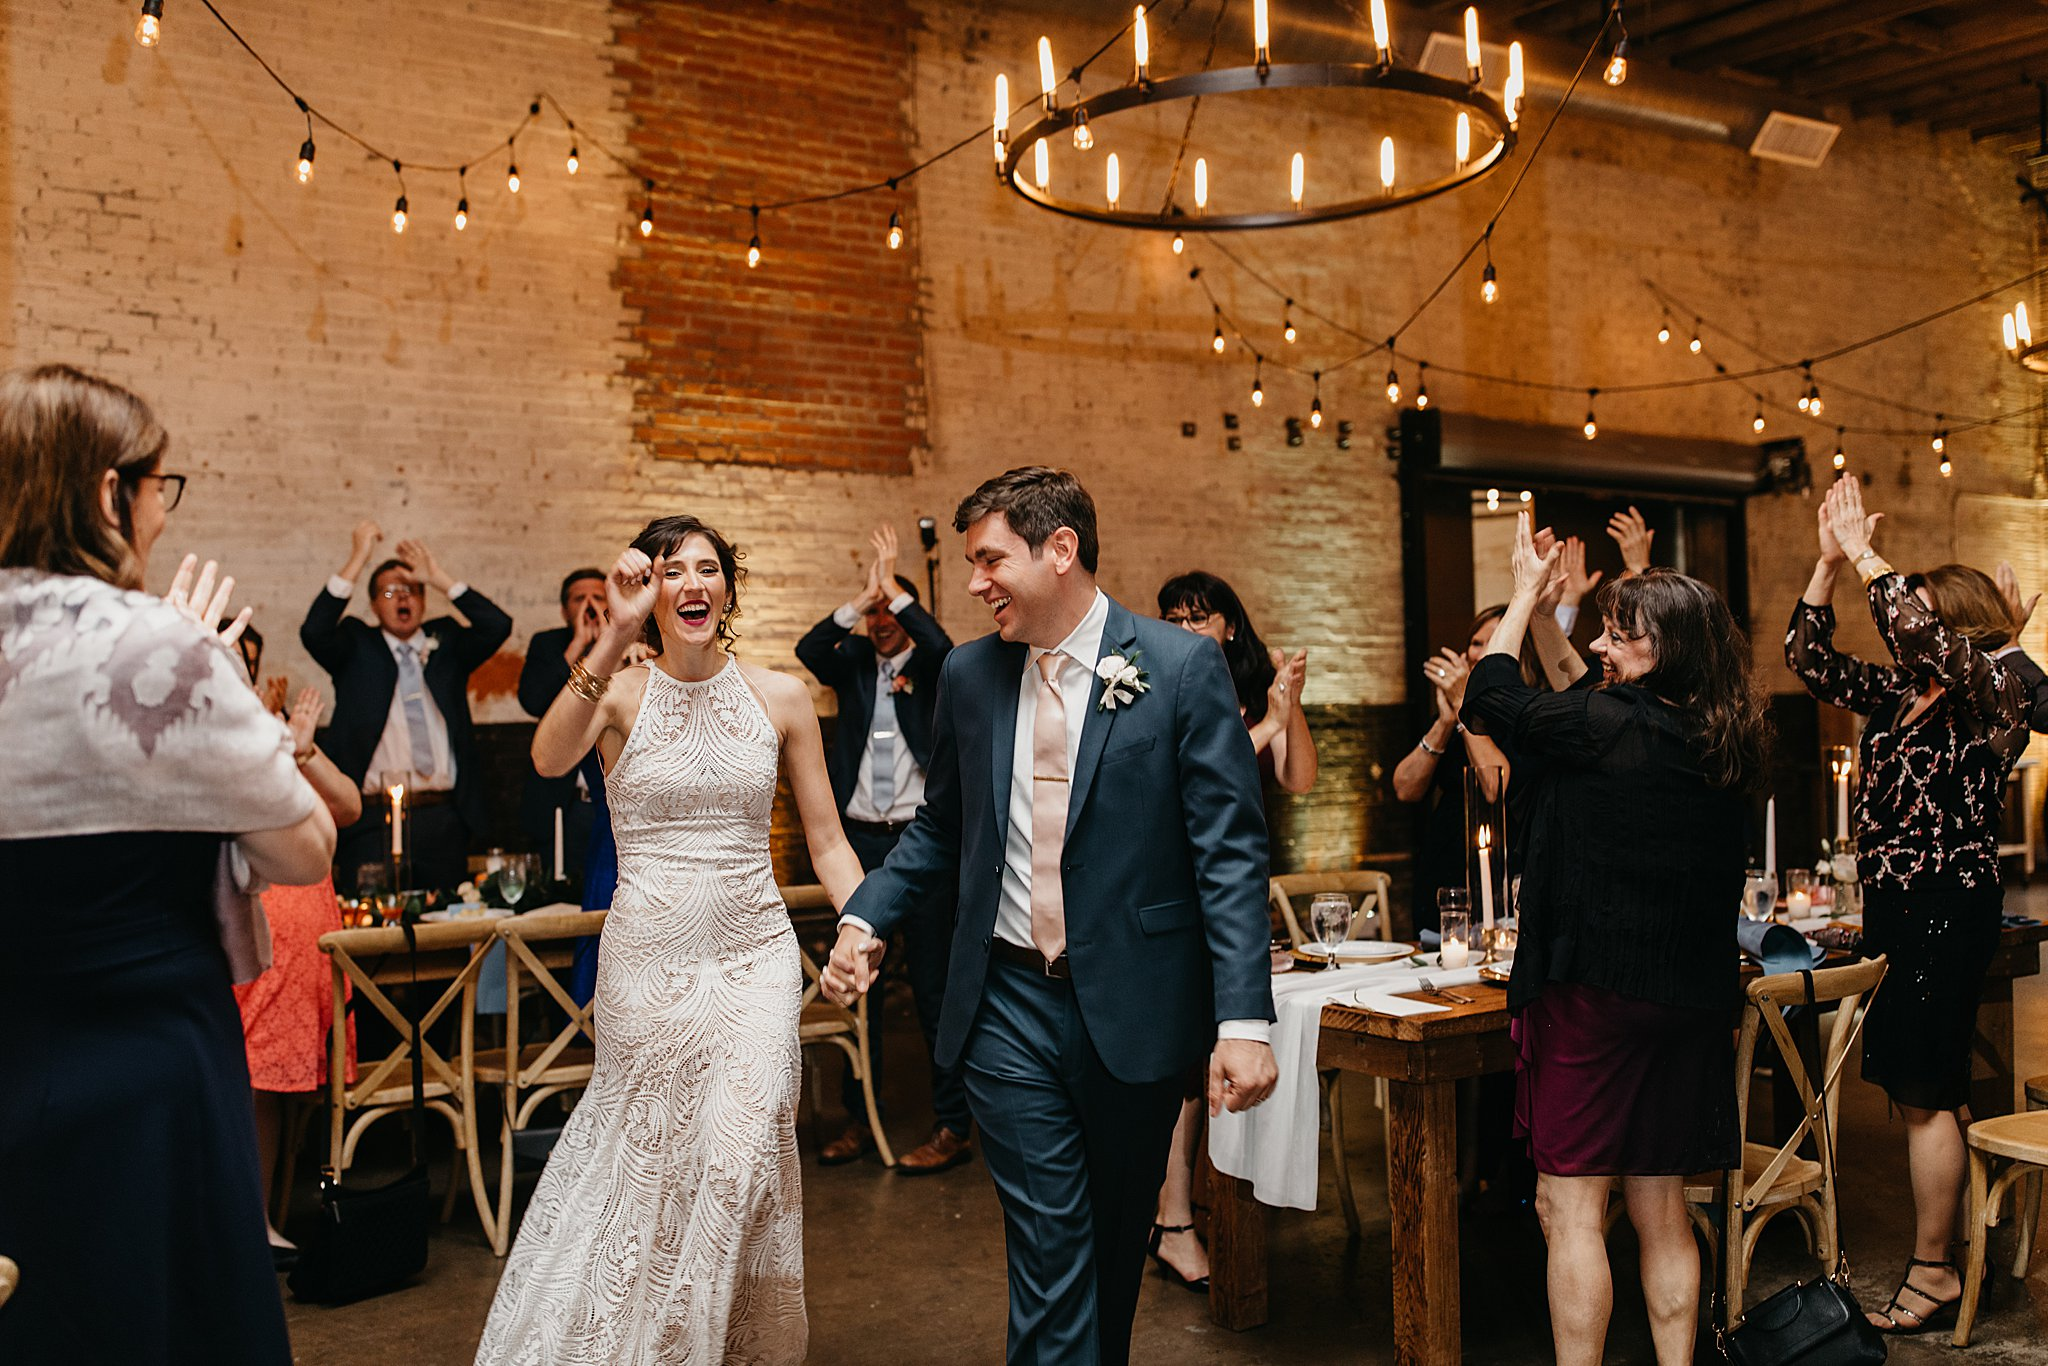 Wilderlove Co_Wedding Photographer_Industrial Wedding_Jewish Wedding_Dallas Texas Wedding_Brake & Clutch Warehouse_North Texas Photographer_0074.jpg